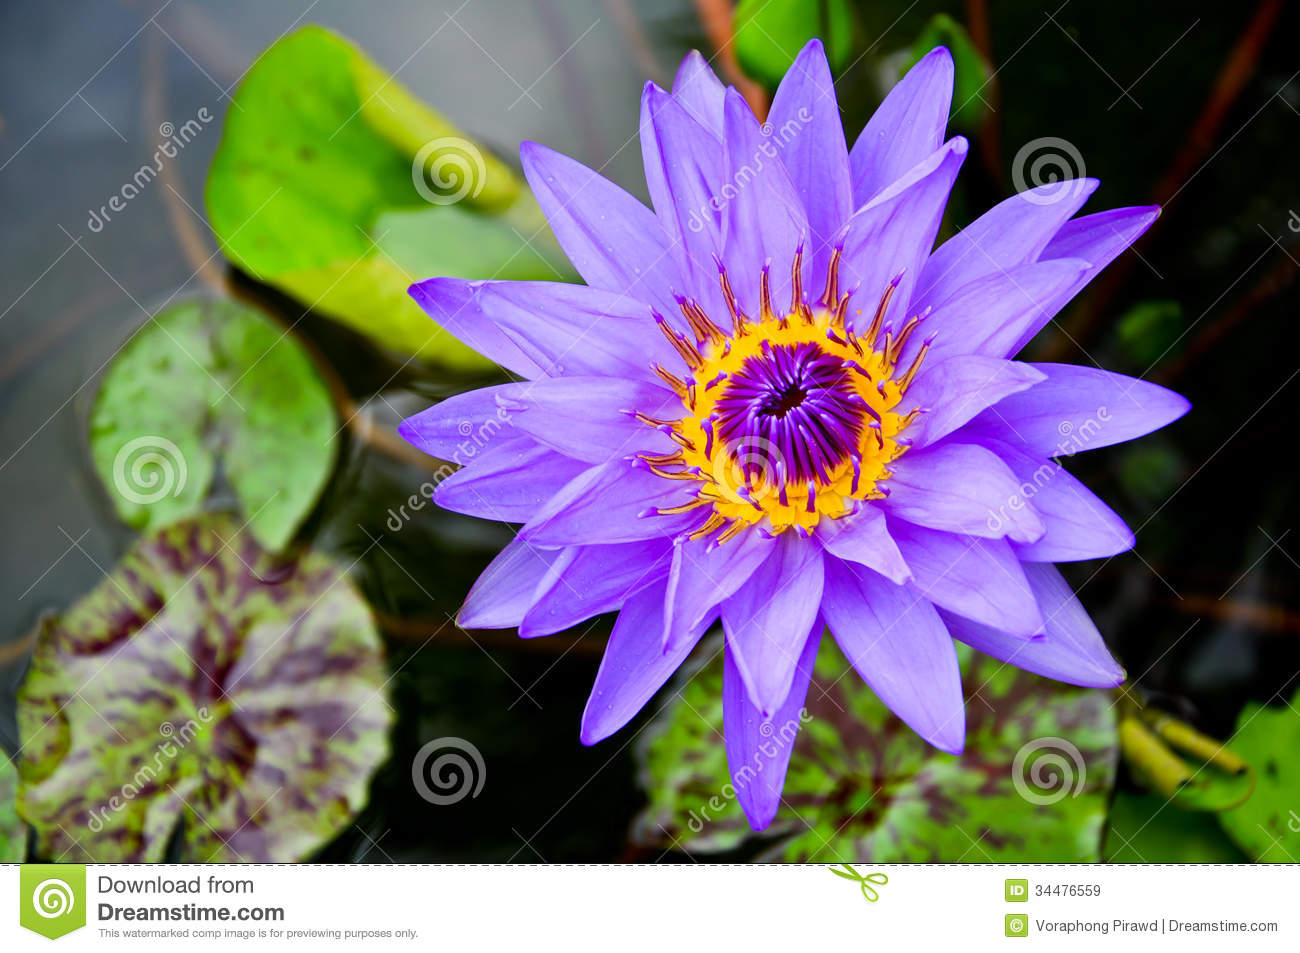 Purple water lily flowers stock image image of aquatic 34476559 purple water lily flowers izmirmasajfo